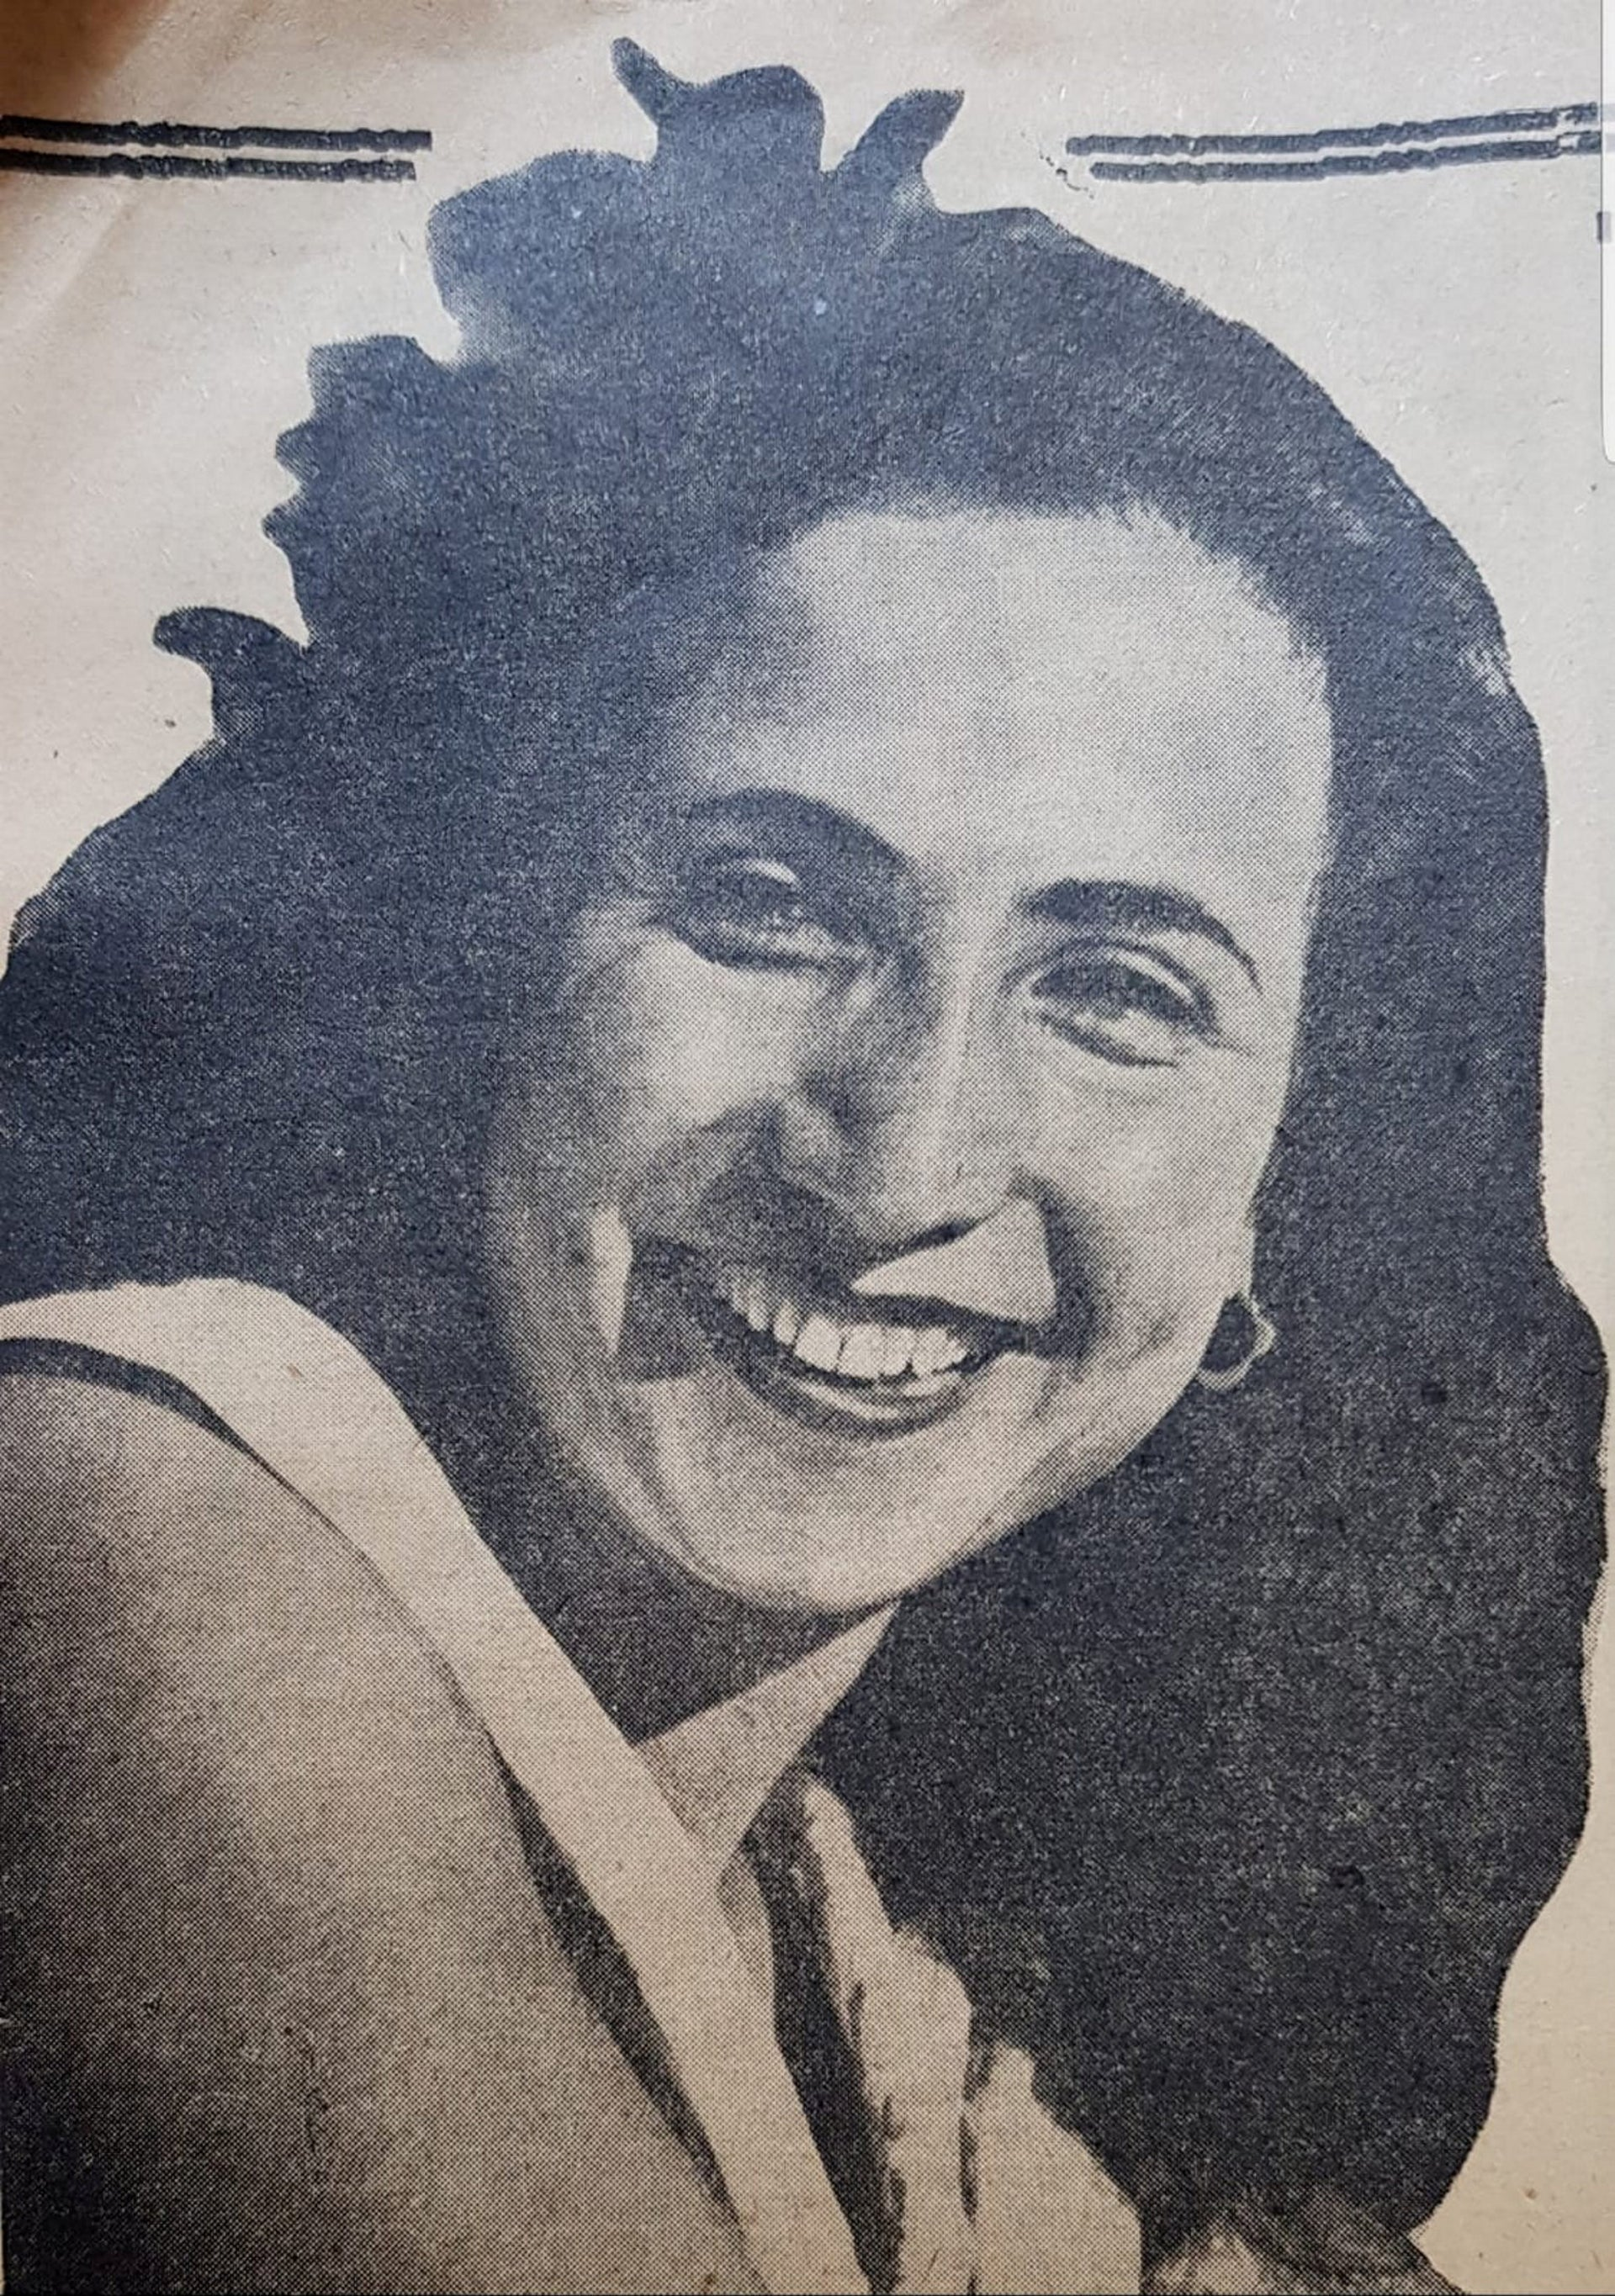 Sara Amram seen in a newspaper clipping. According to her diary, King Hussein himself visited her after she was arrested.